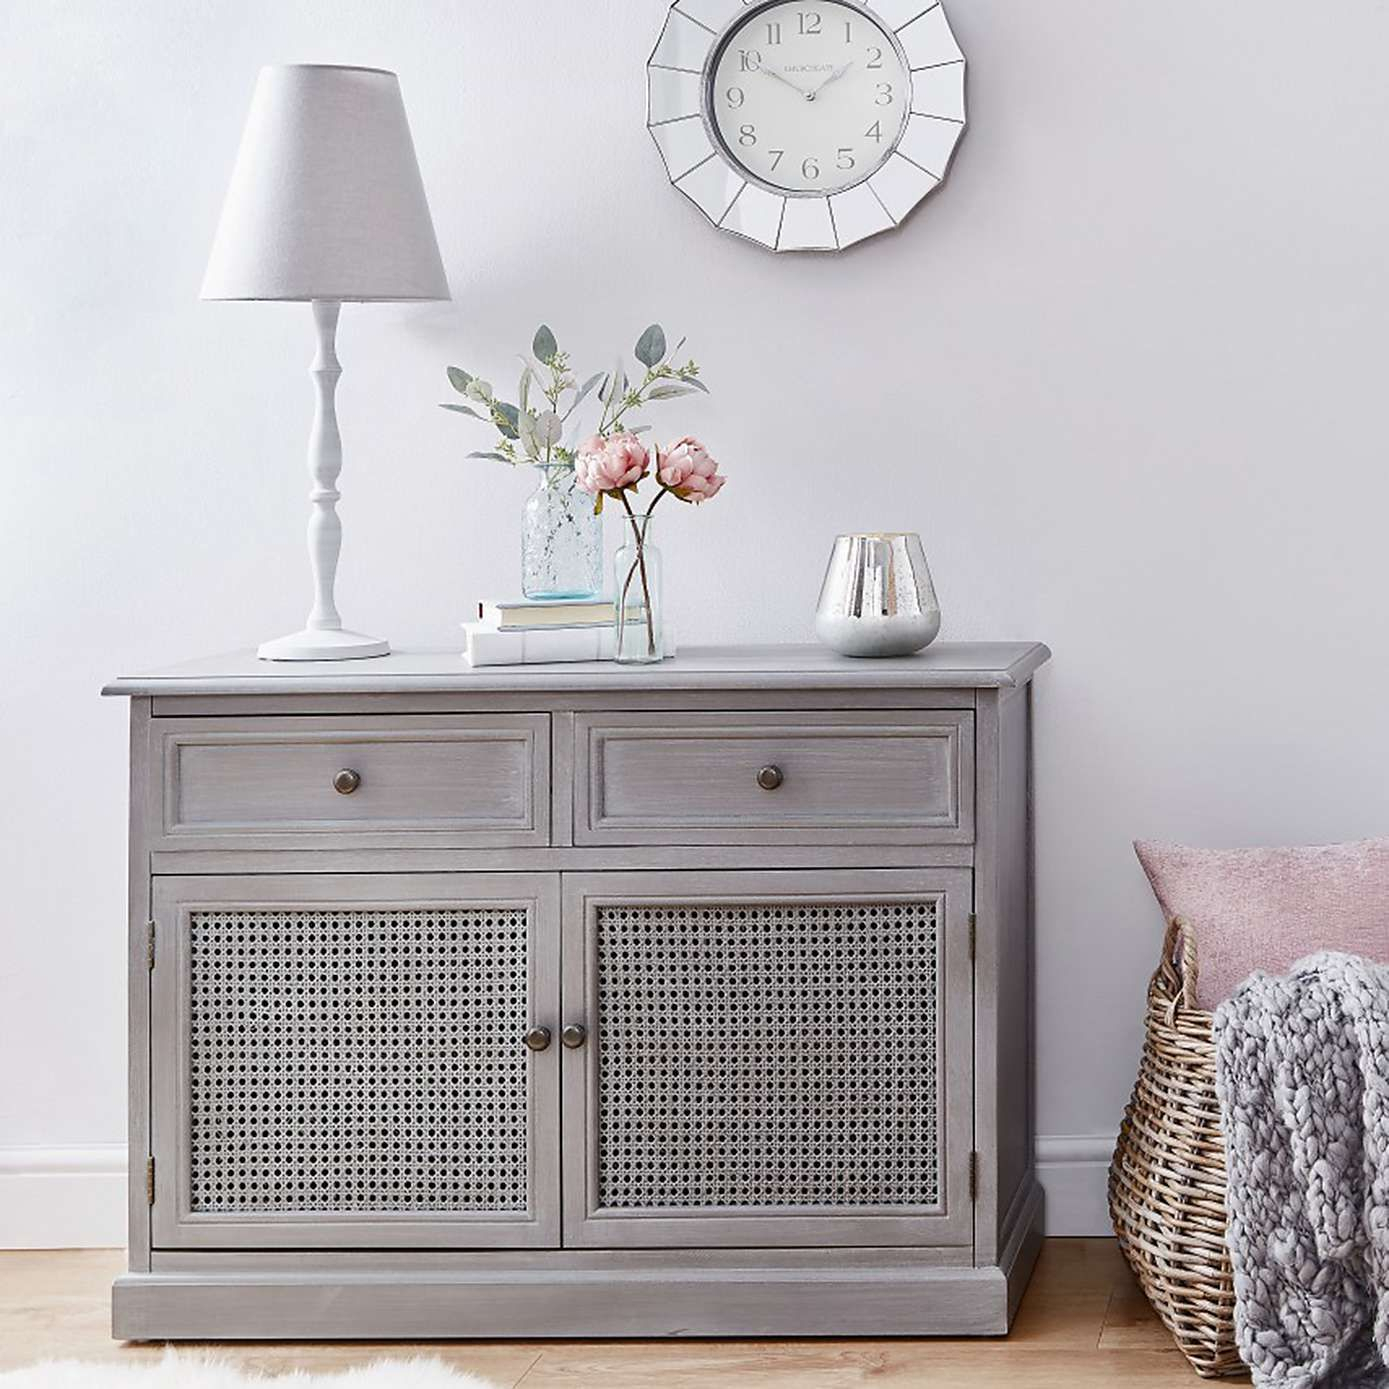 Lucy Cane Grey Small Sideboard | Living Room Ideas In 2019 For Upper Stanton Sideboards (View 15 of 30)